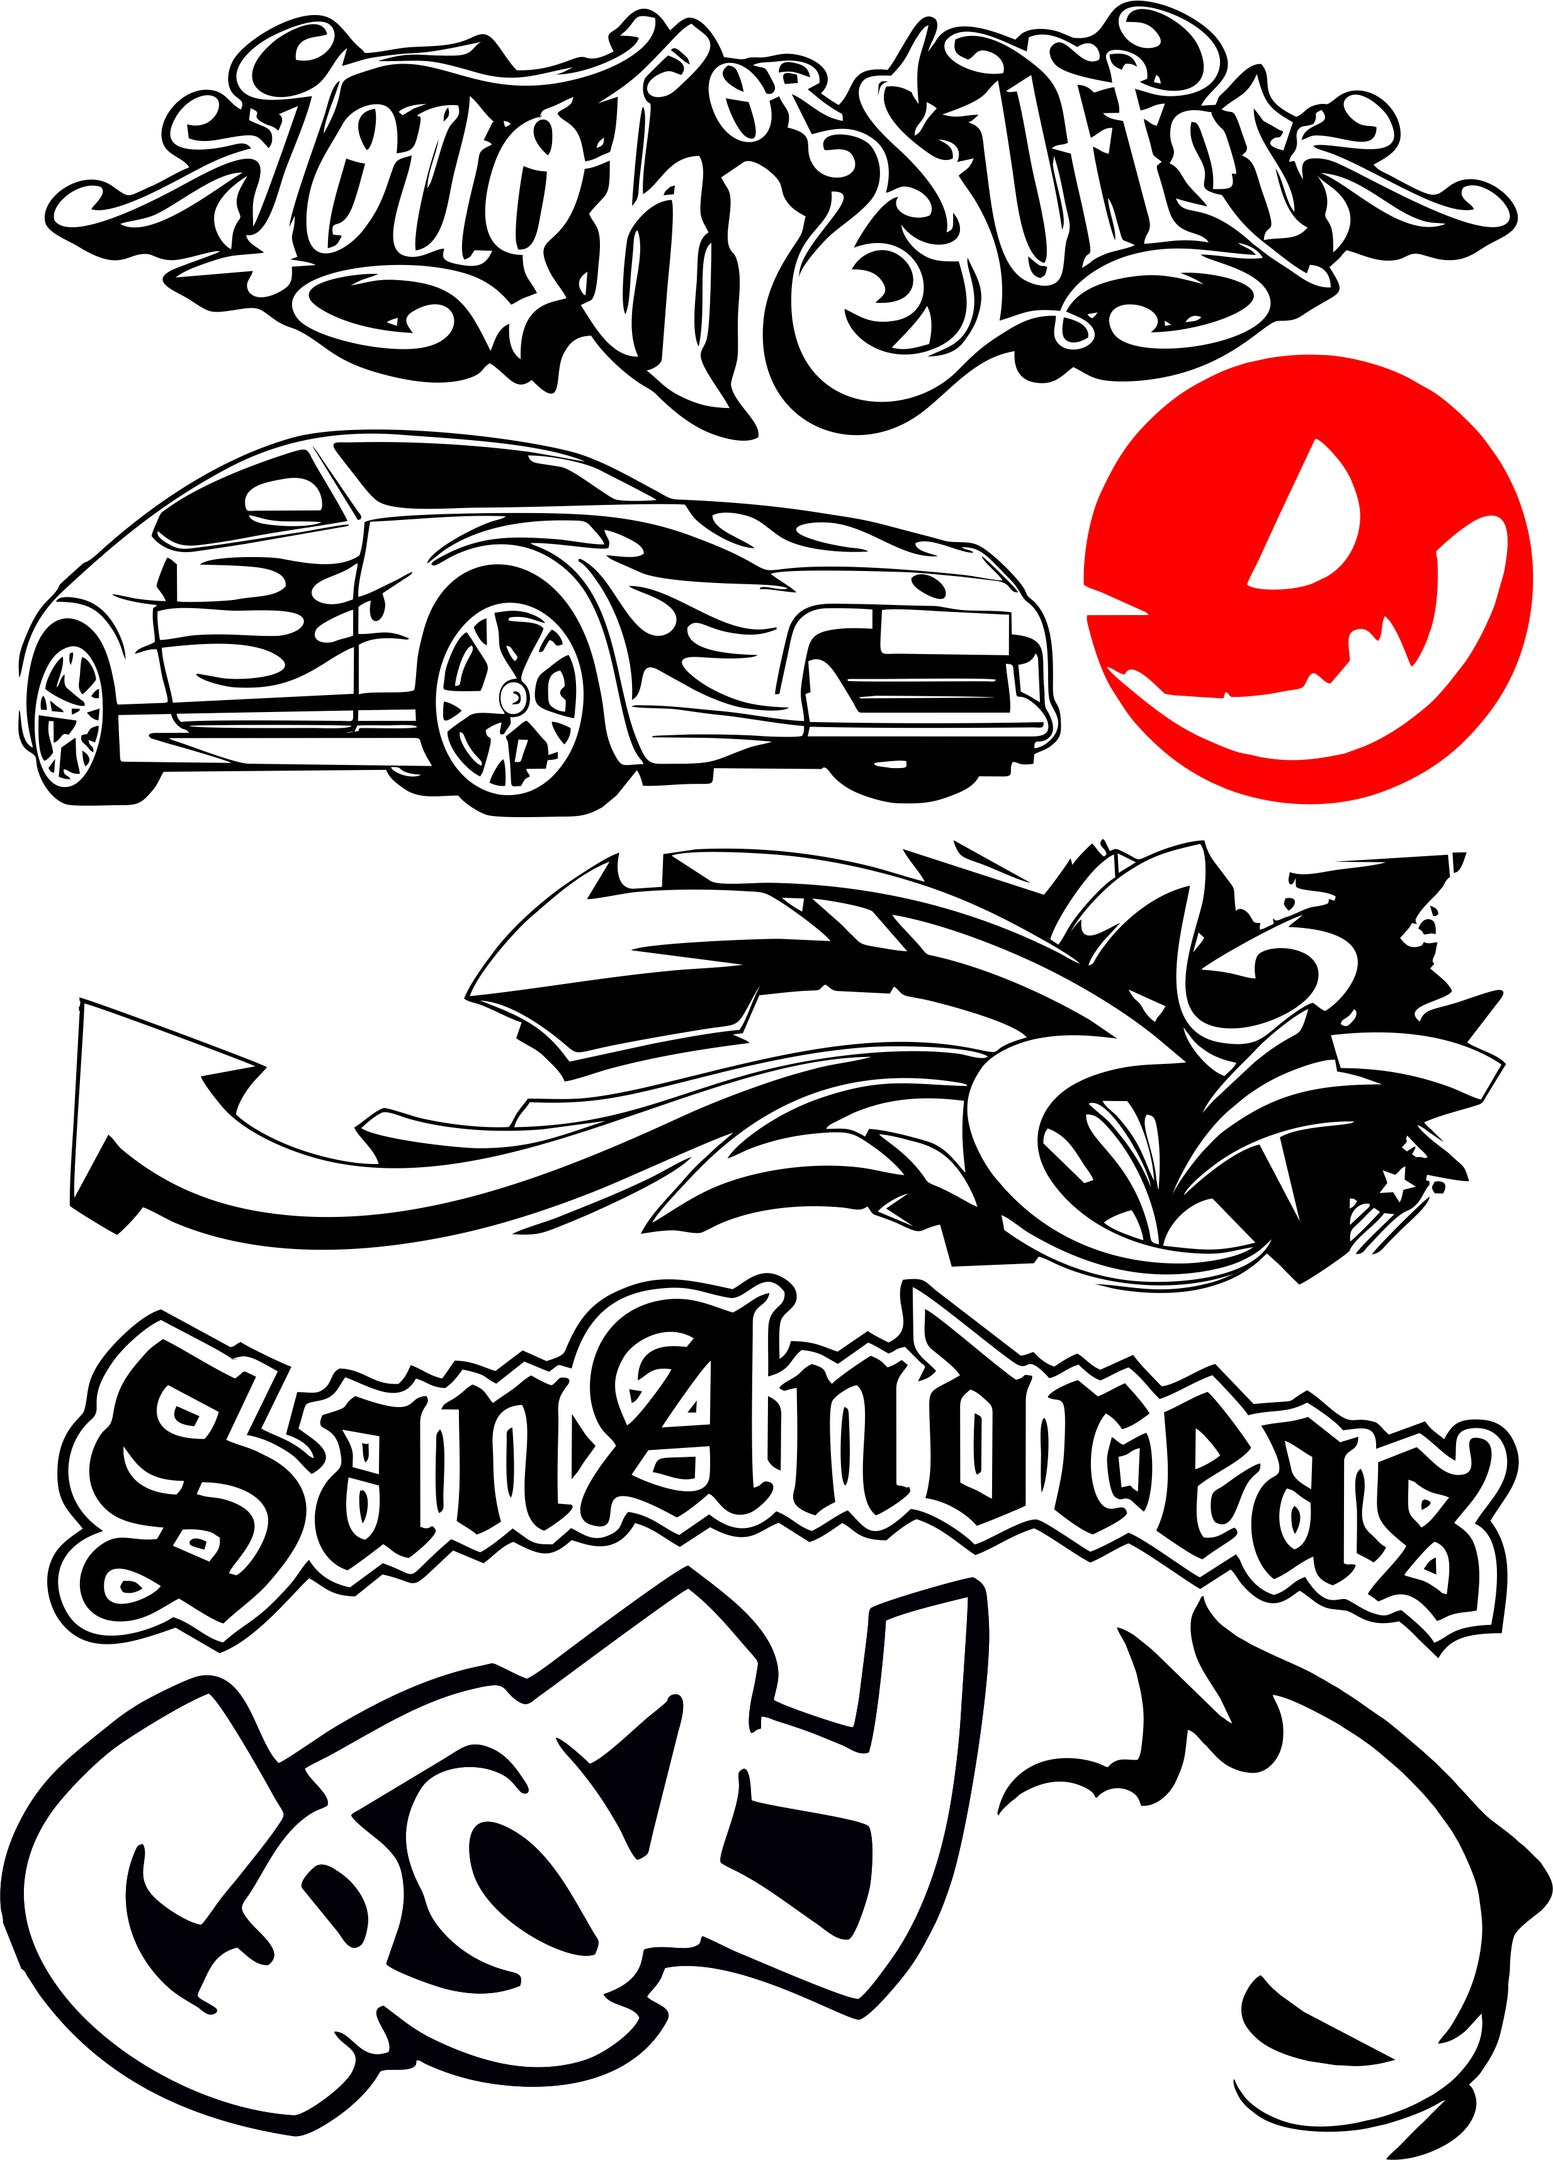 Car Bike Vehicle Graphics Vinyls Decals Vector Free Vector cdr